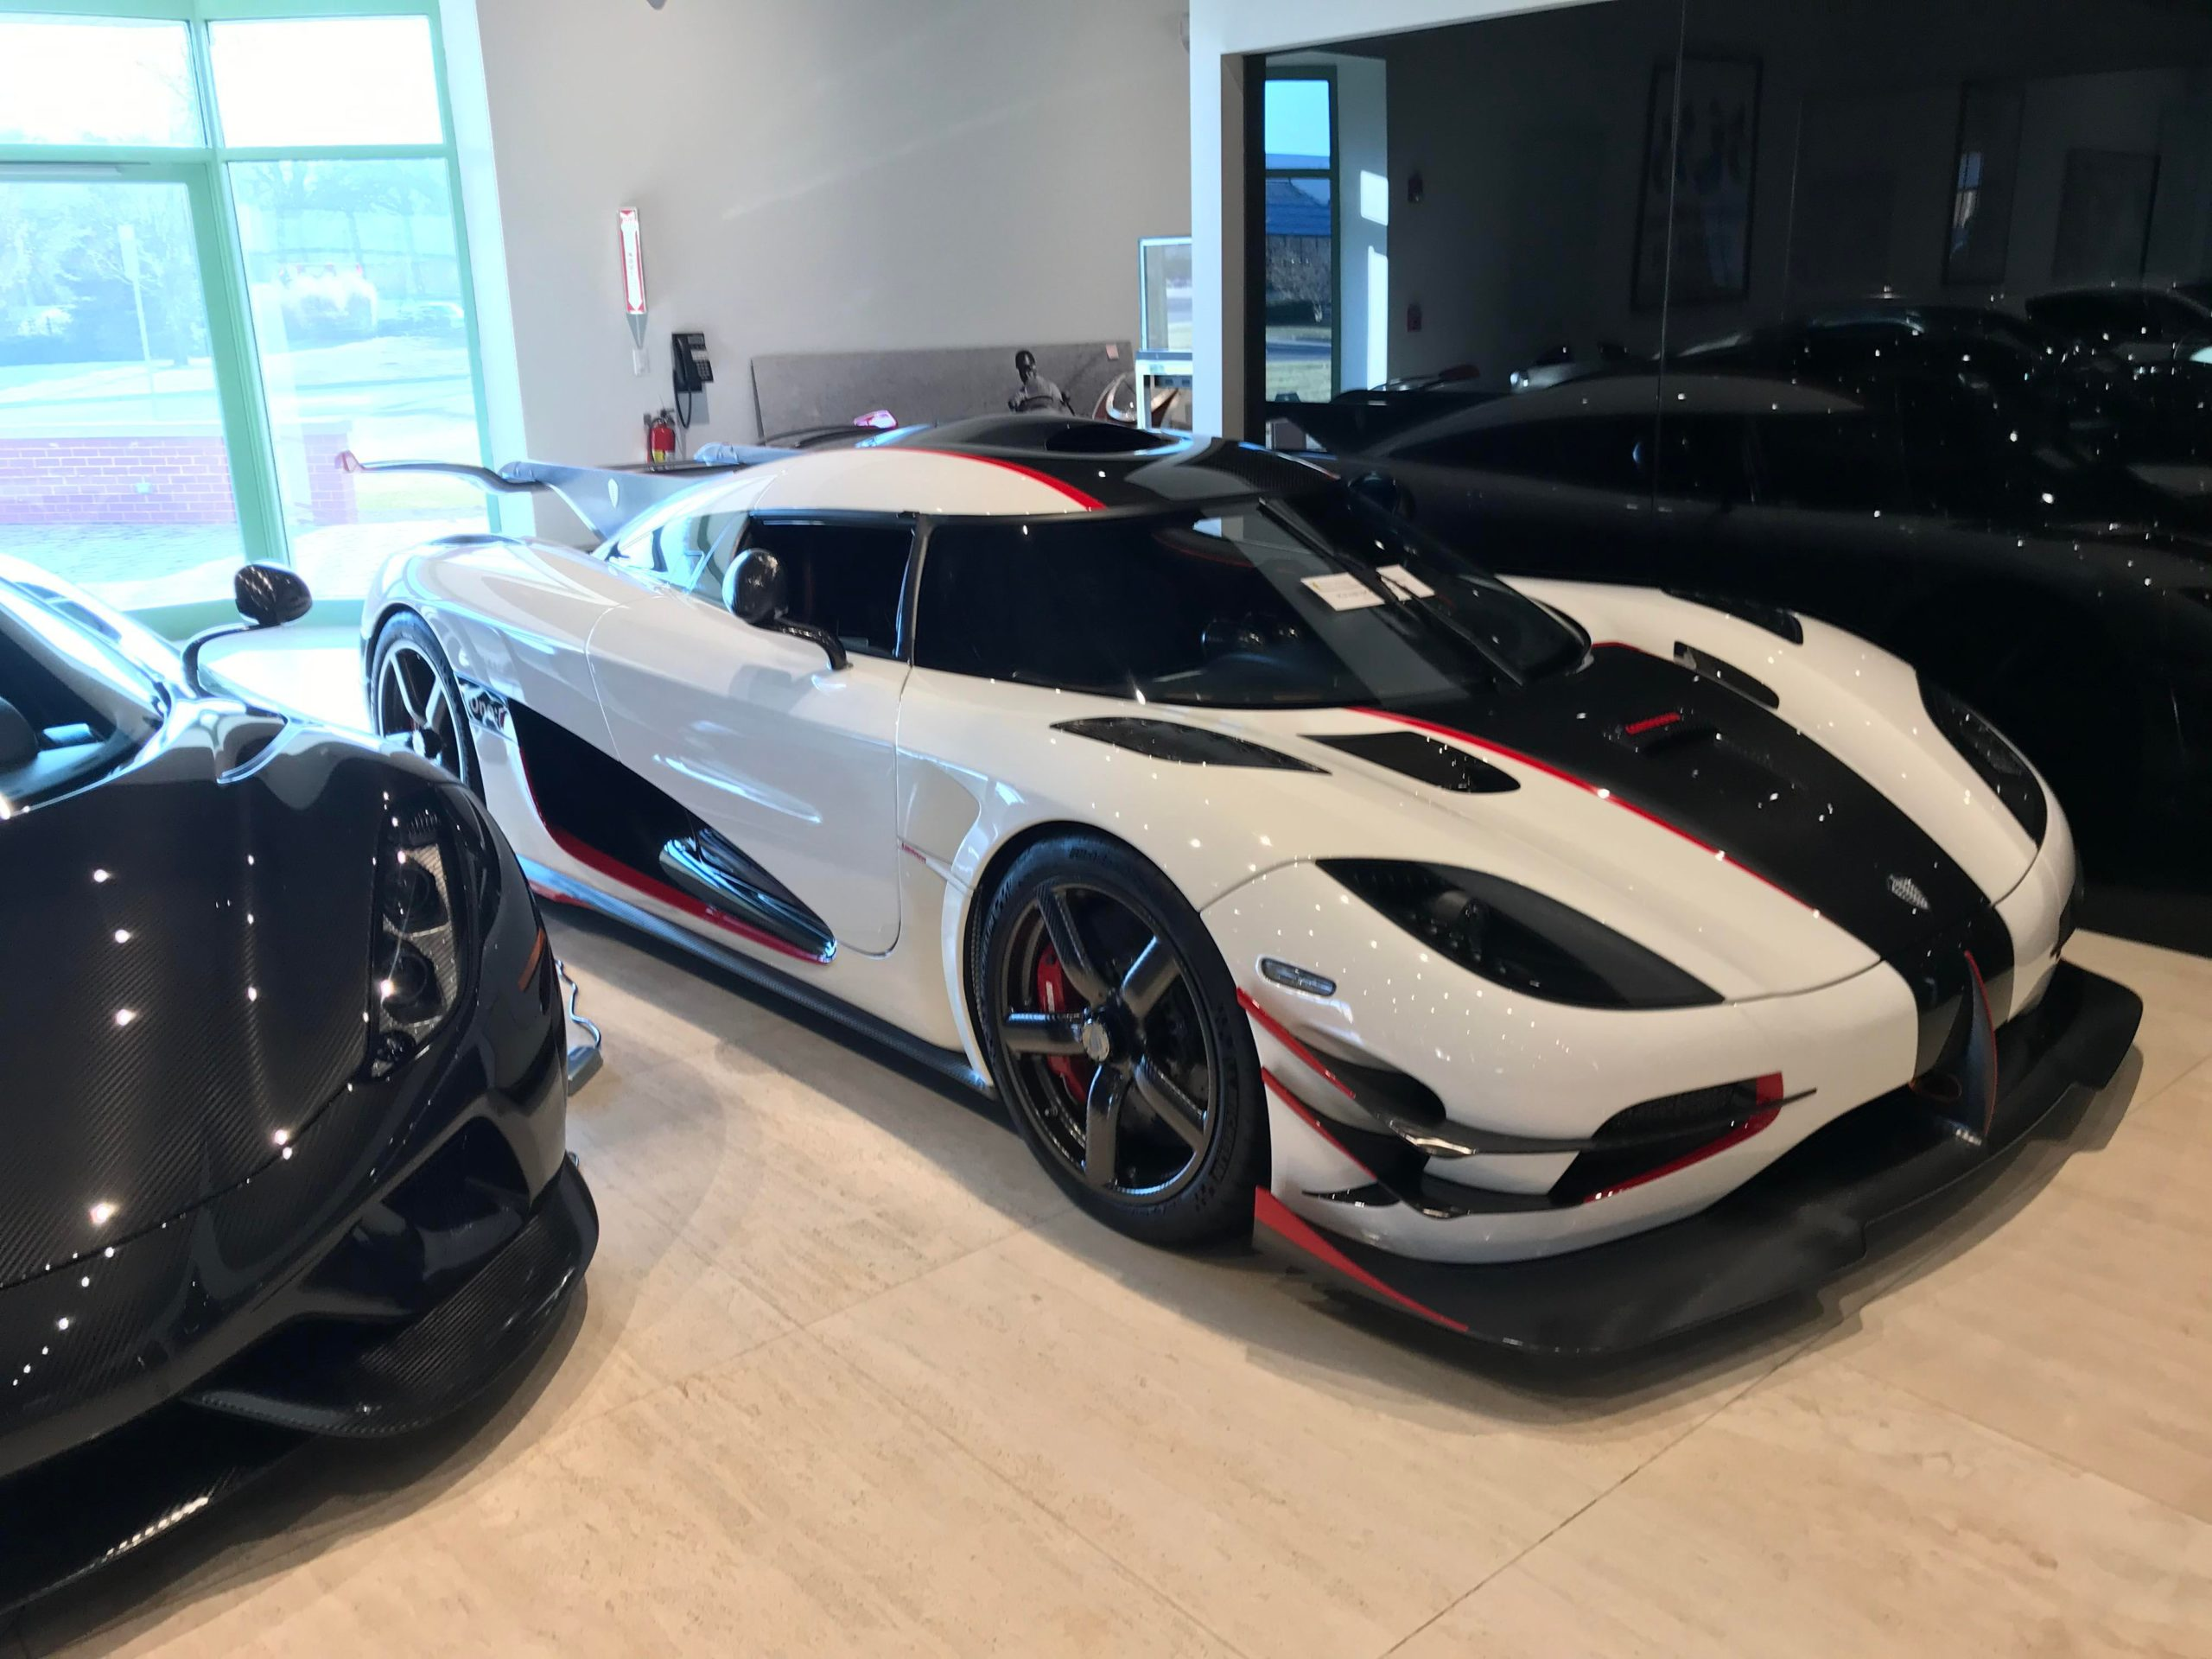 Koenigsegg One:1 at Ferrari Lake Forrest